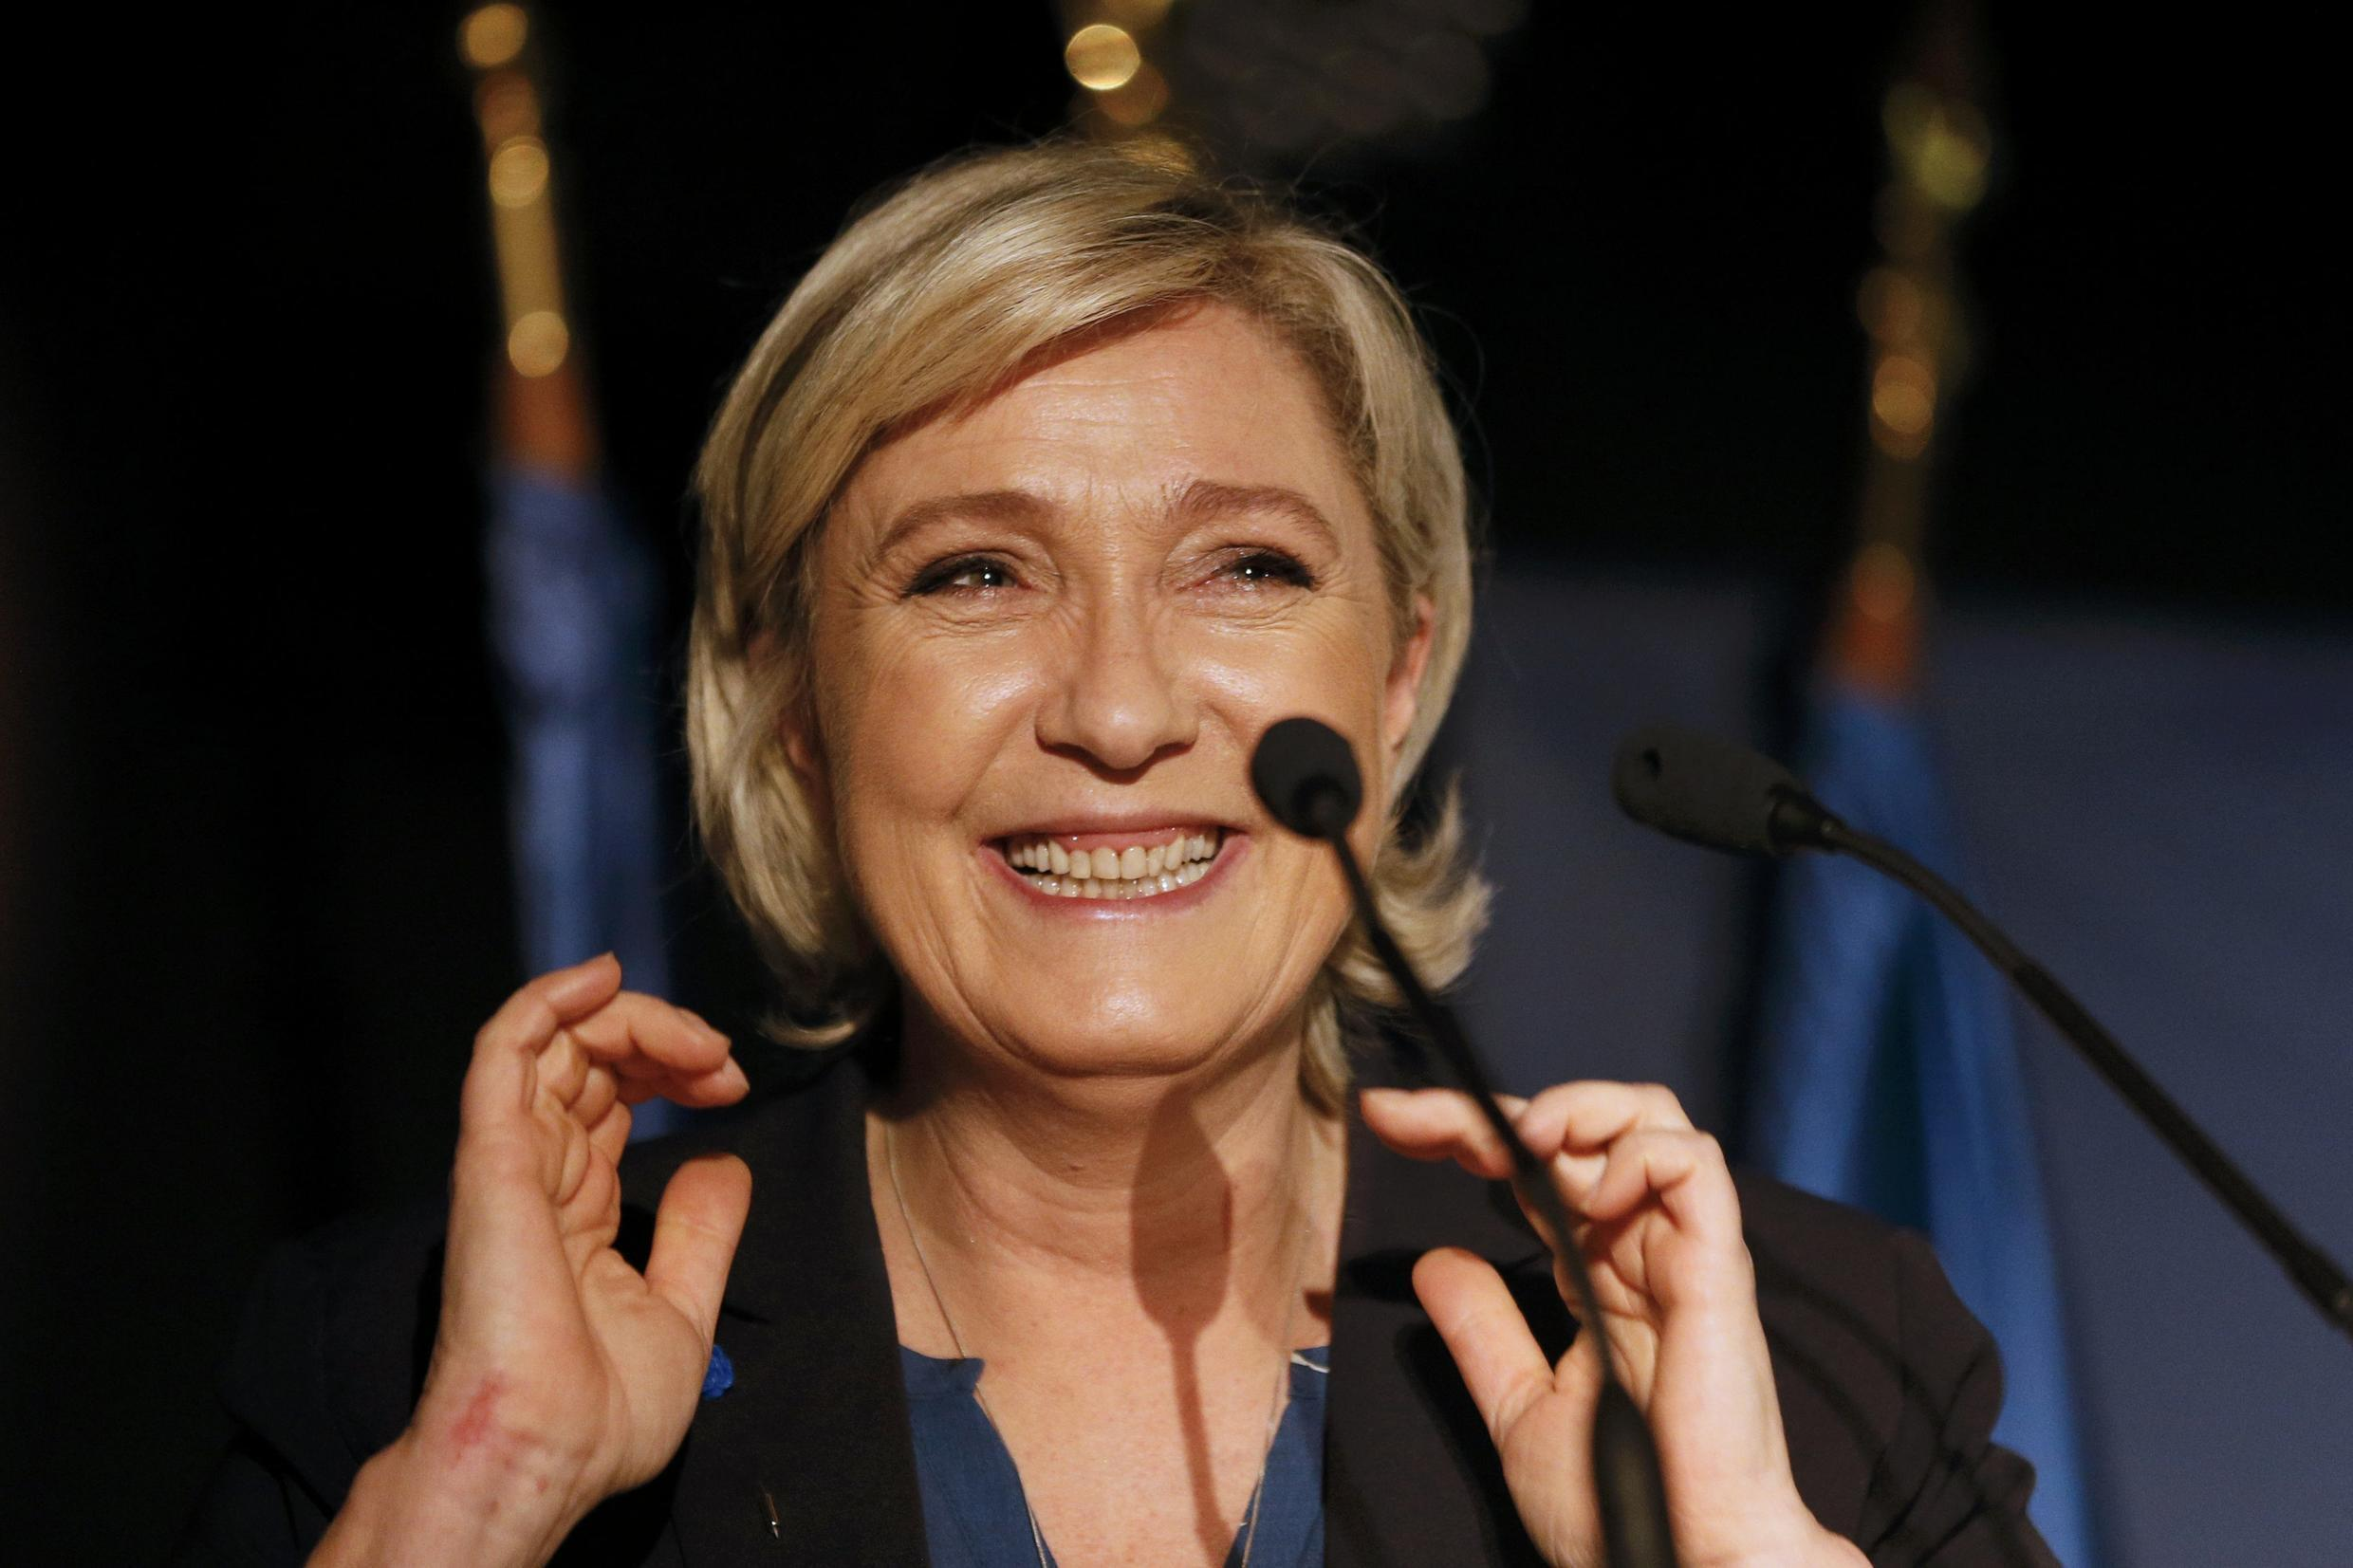 Marine Le Pen at an election rally on Friday